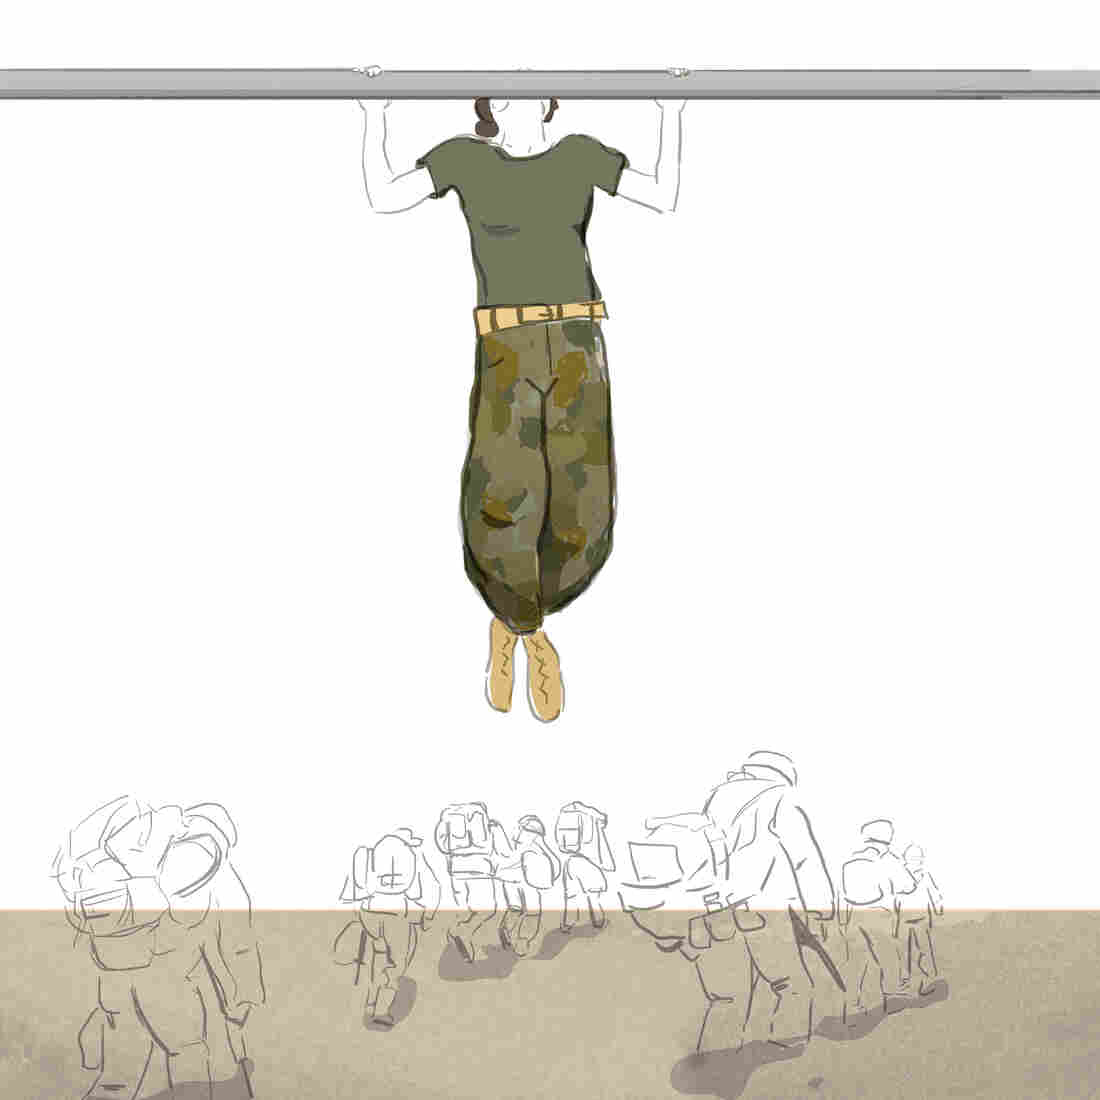 Maria Fabrizio created this image on the morning of Dec. 27, after hearing Tom Bowman's Morning Edition  story about how most female Marine Corps recruits aren't able to meet a new pullup standard.